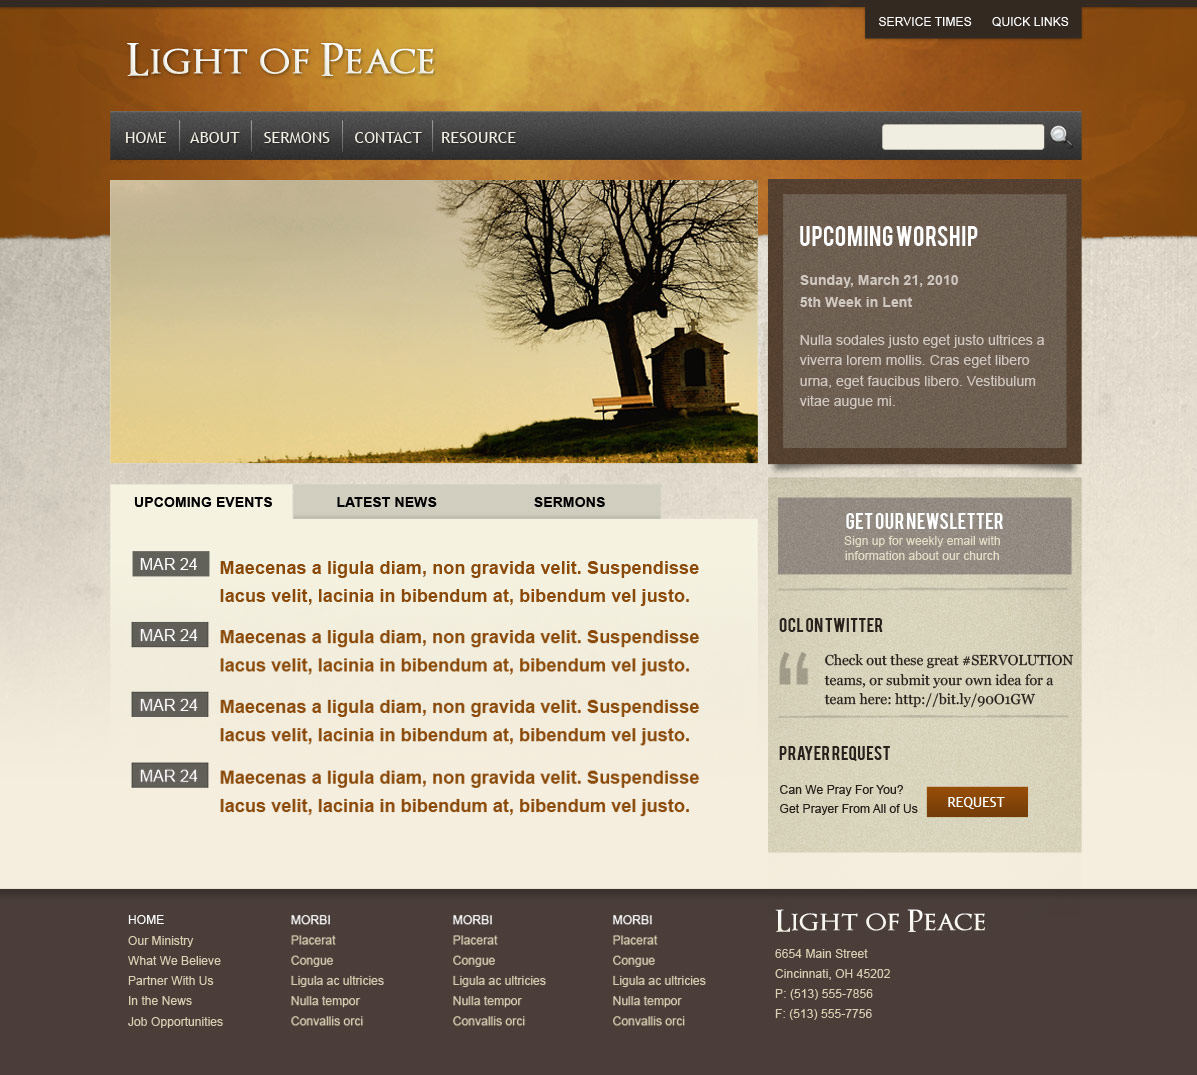 Light of Peace - This is the style 4 homepage template.